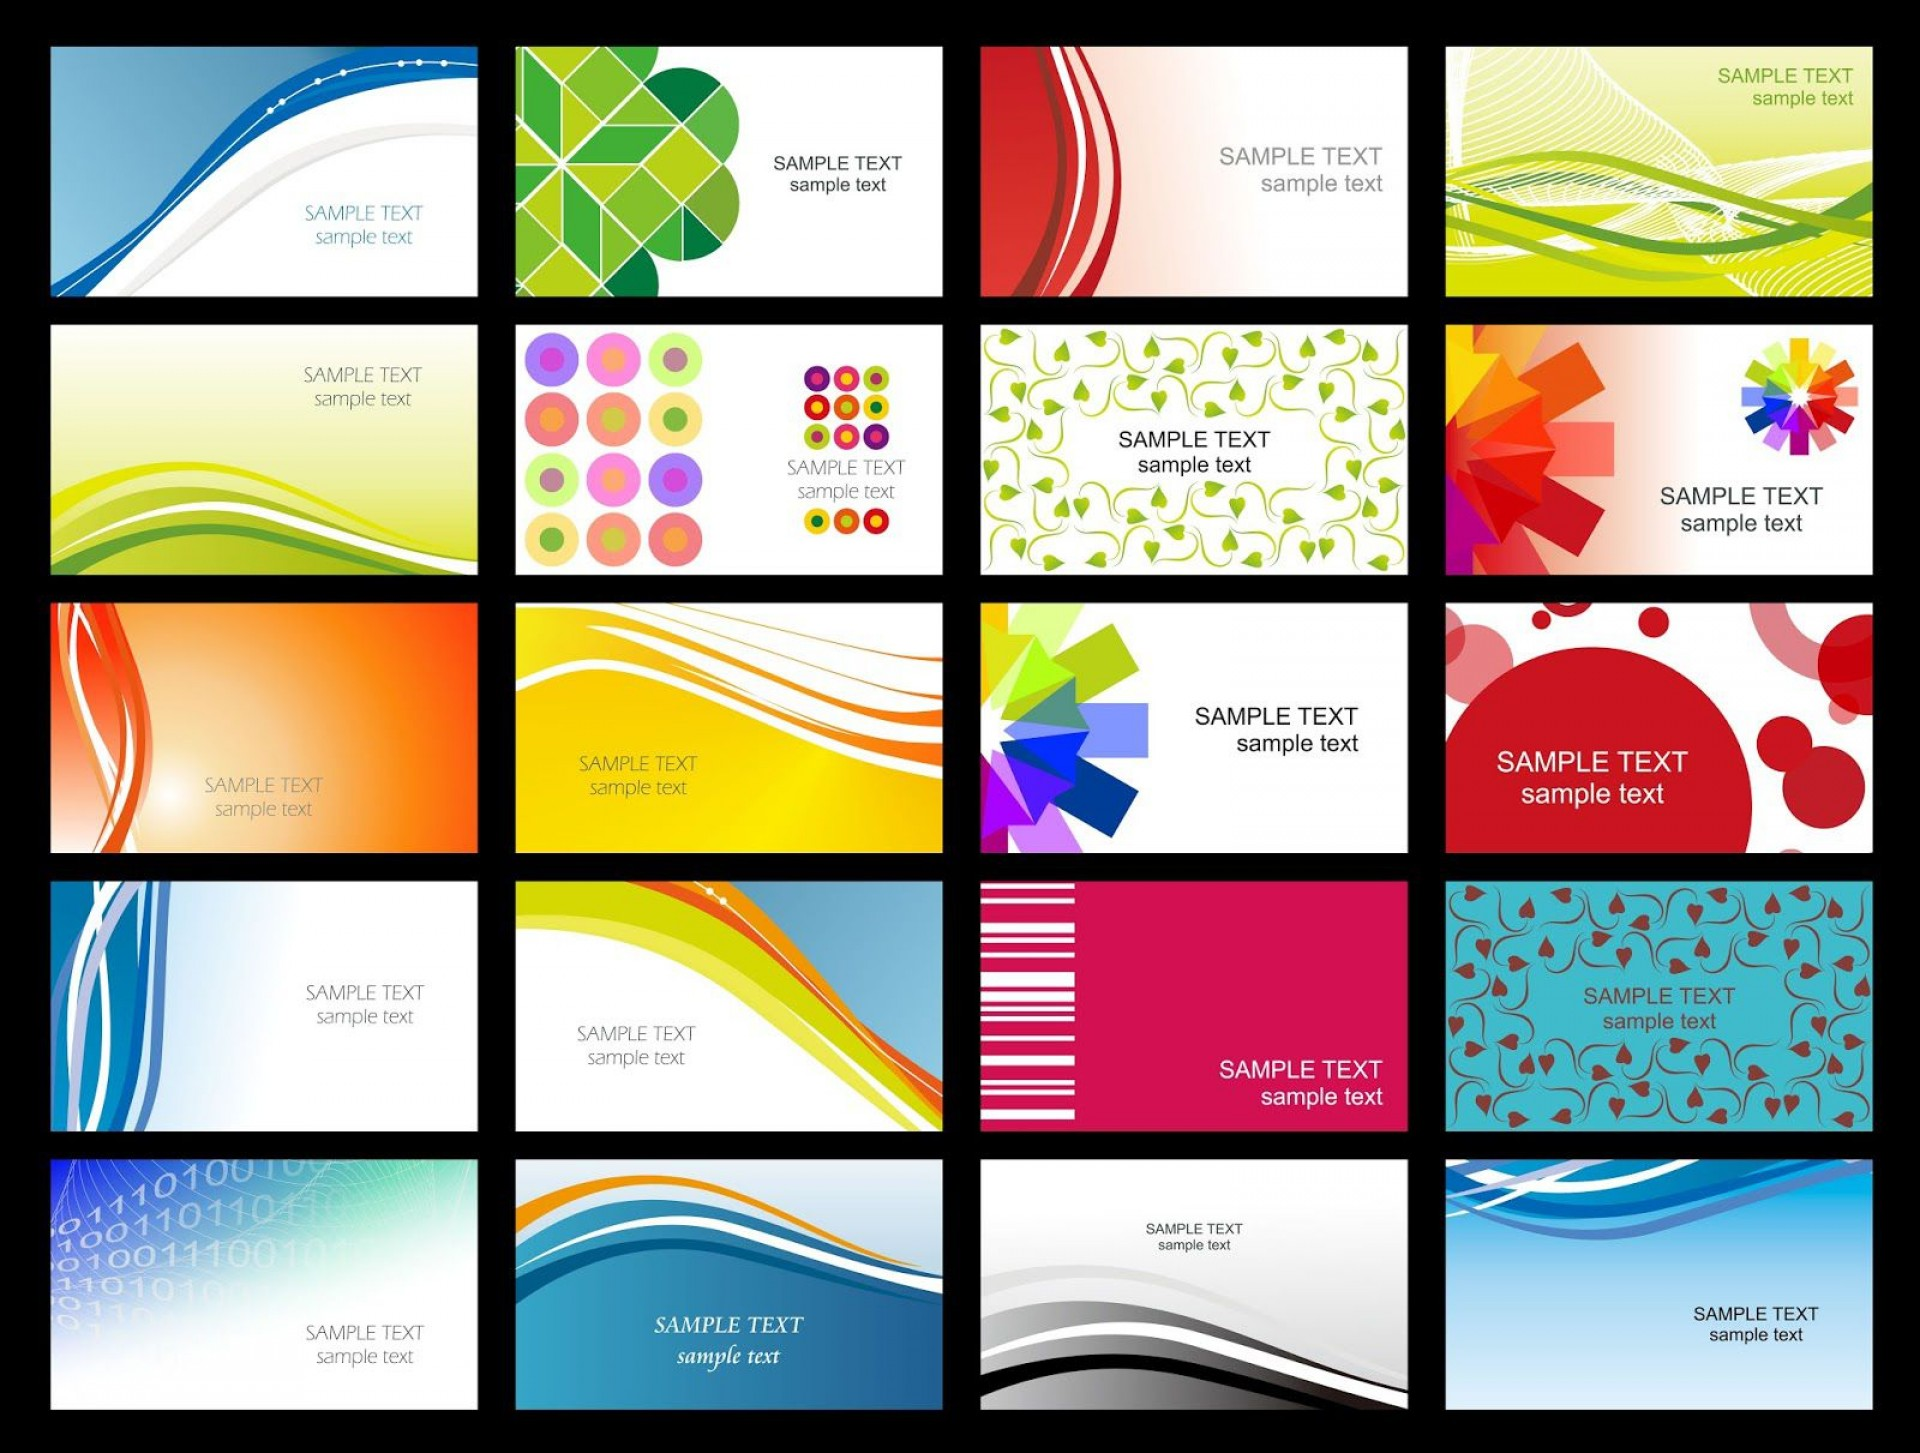 008 Impressive Free Blank Busines Card Template Idea  Templates Online Printable For Word Download1920